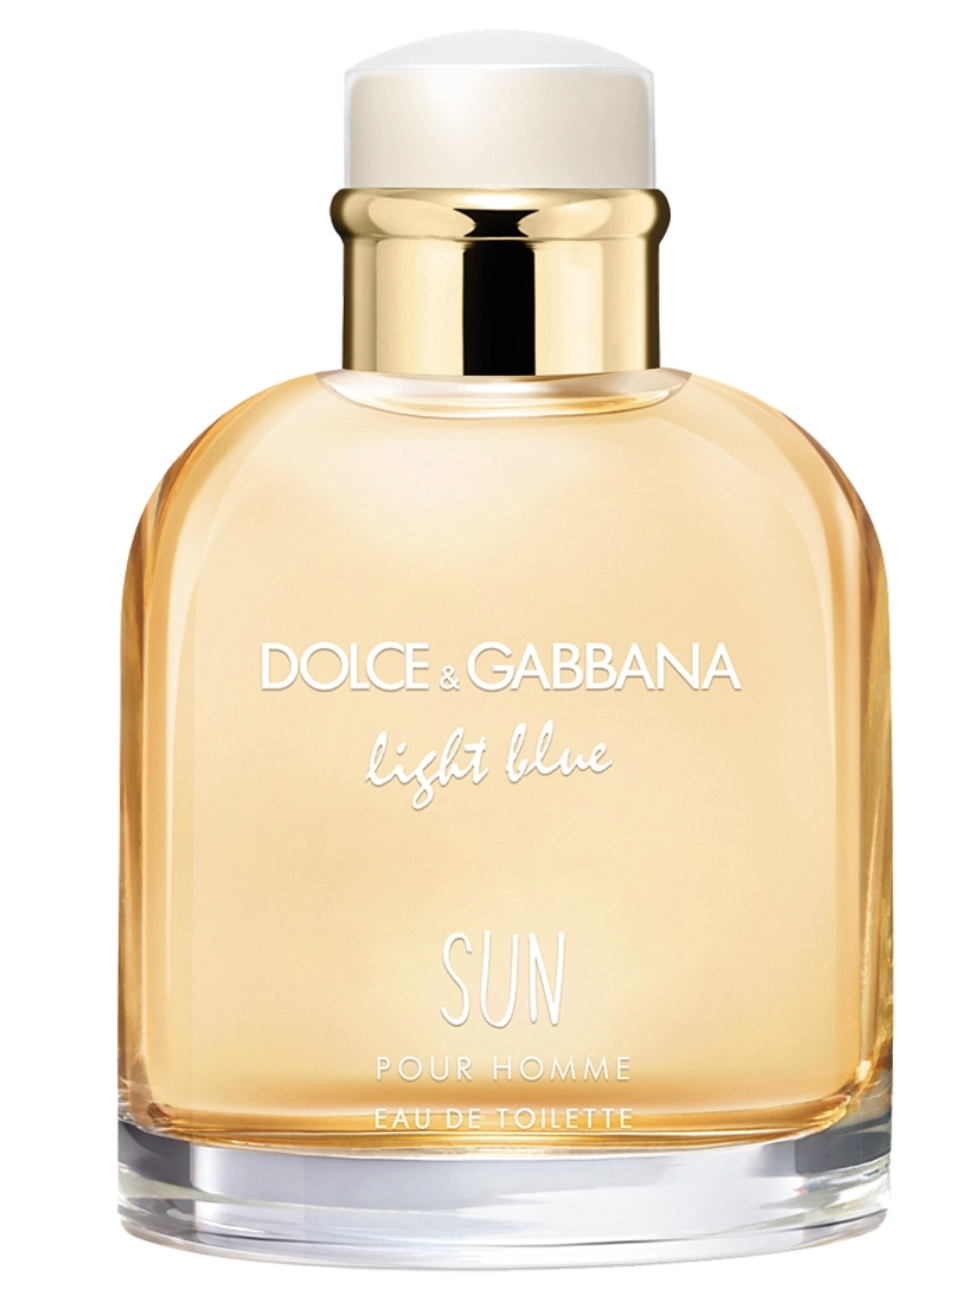 Fragrances: Dolce & Gabbana's Light Blue Sun (Pour Homme).